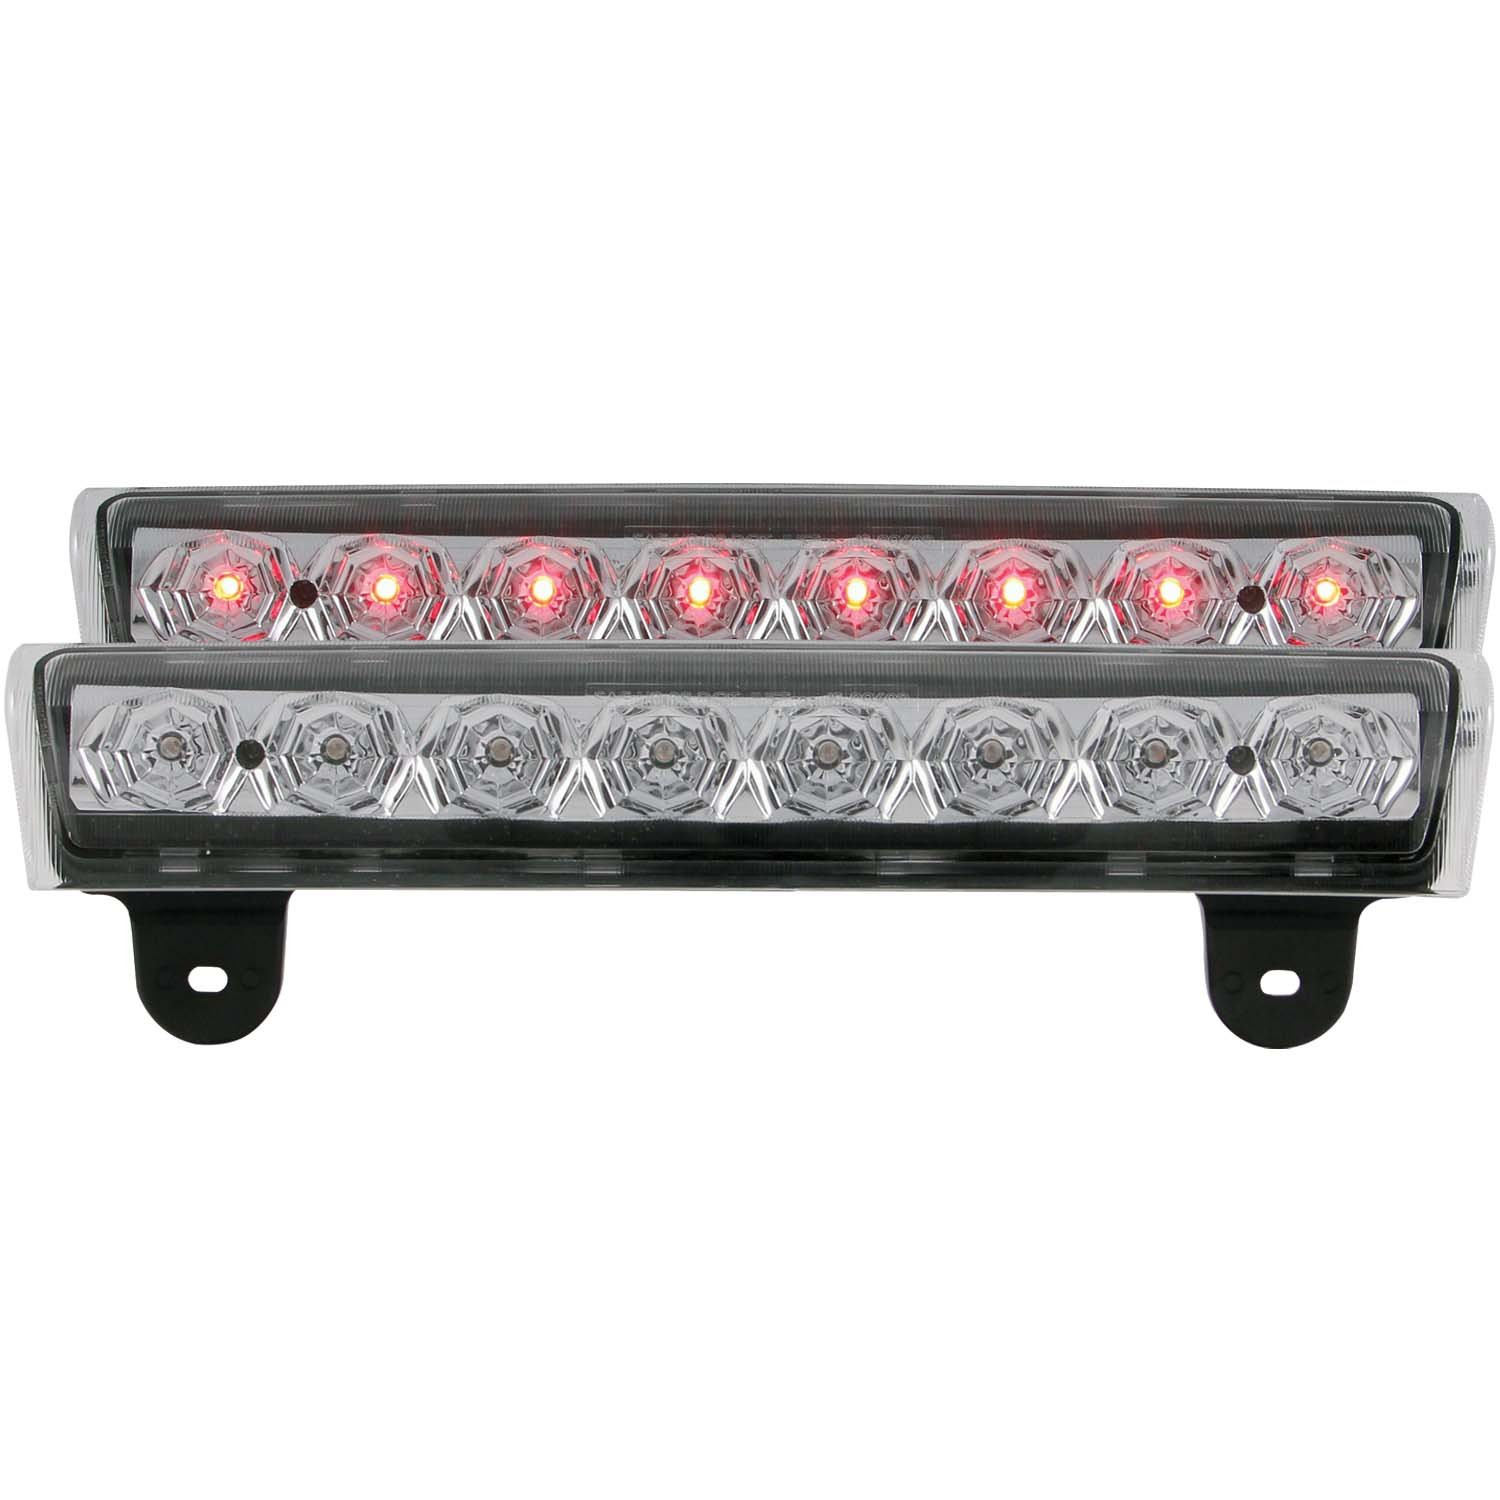 AnzoUSA 531086 Third Brake Light